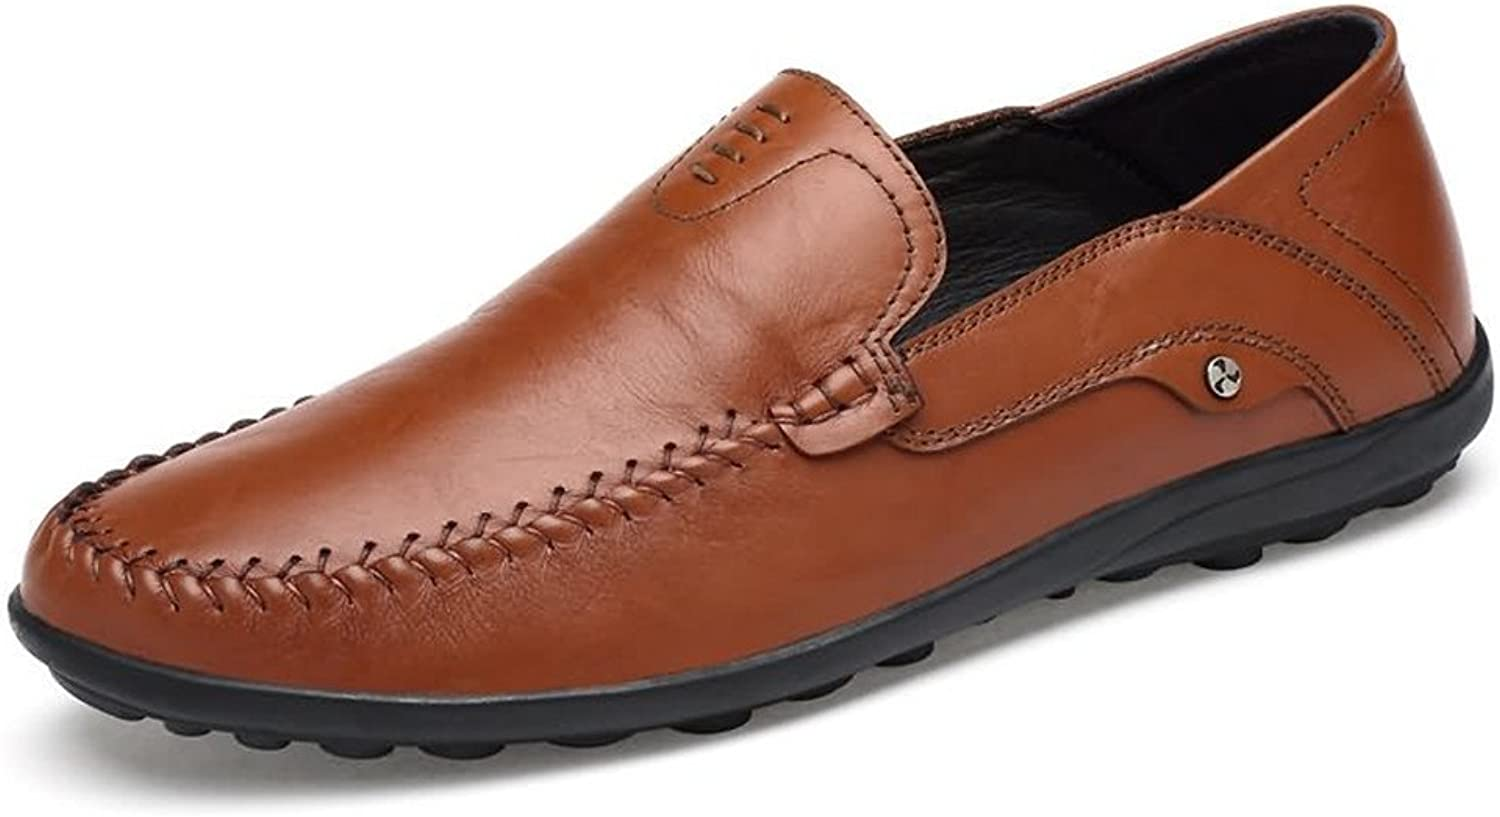 Xujw-shoes, 2018 new Men's Moccasins Leather Hollywood Driving Style Loafer (color   Light Brown, Size   7.5 UK)